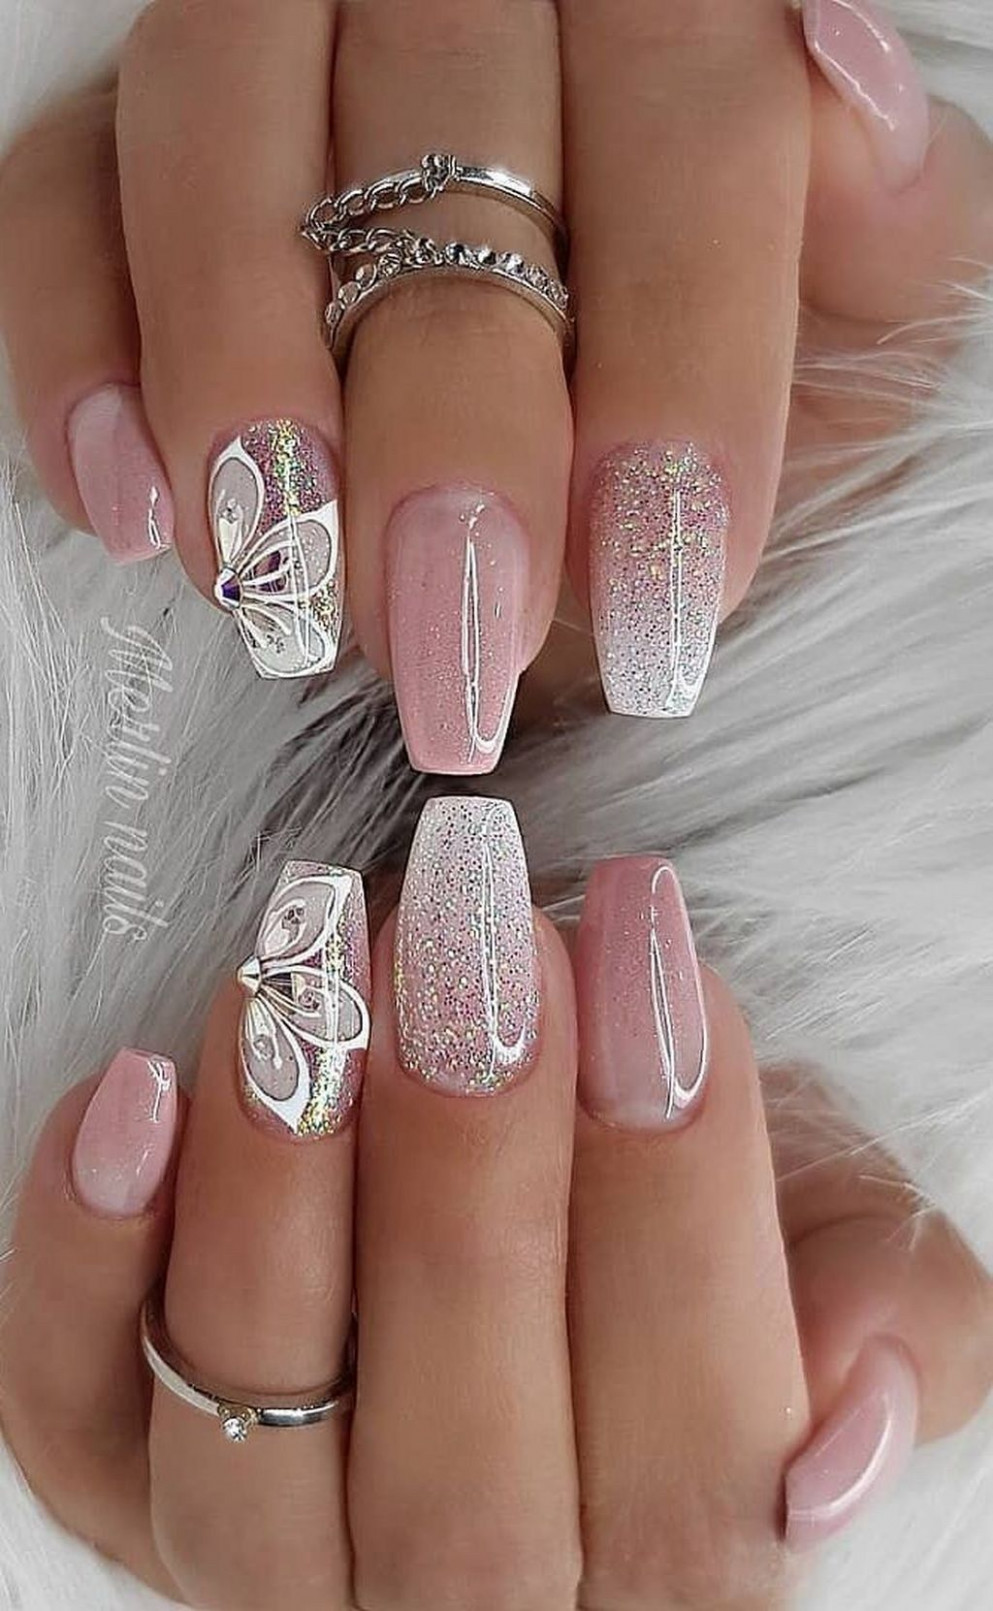 Awesome Nail Art Ideas For Cool Girl 12  Bright nail designs  - Nail Ideas For Girls